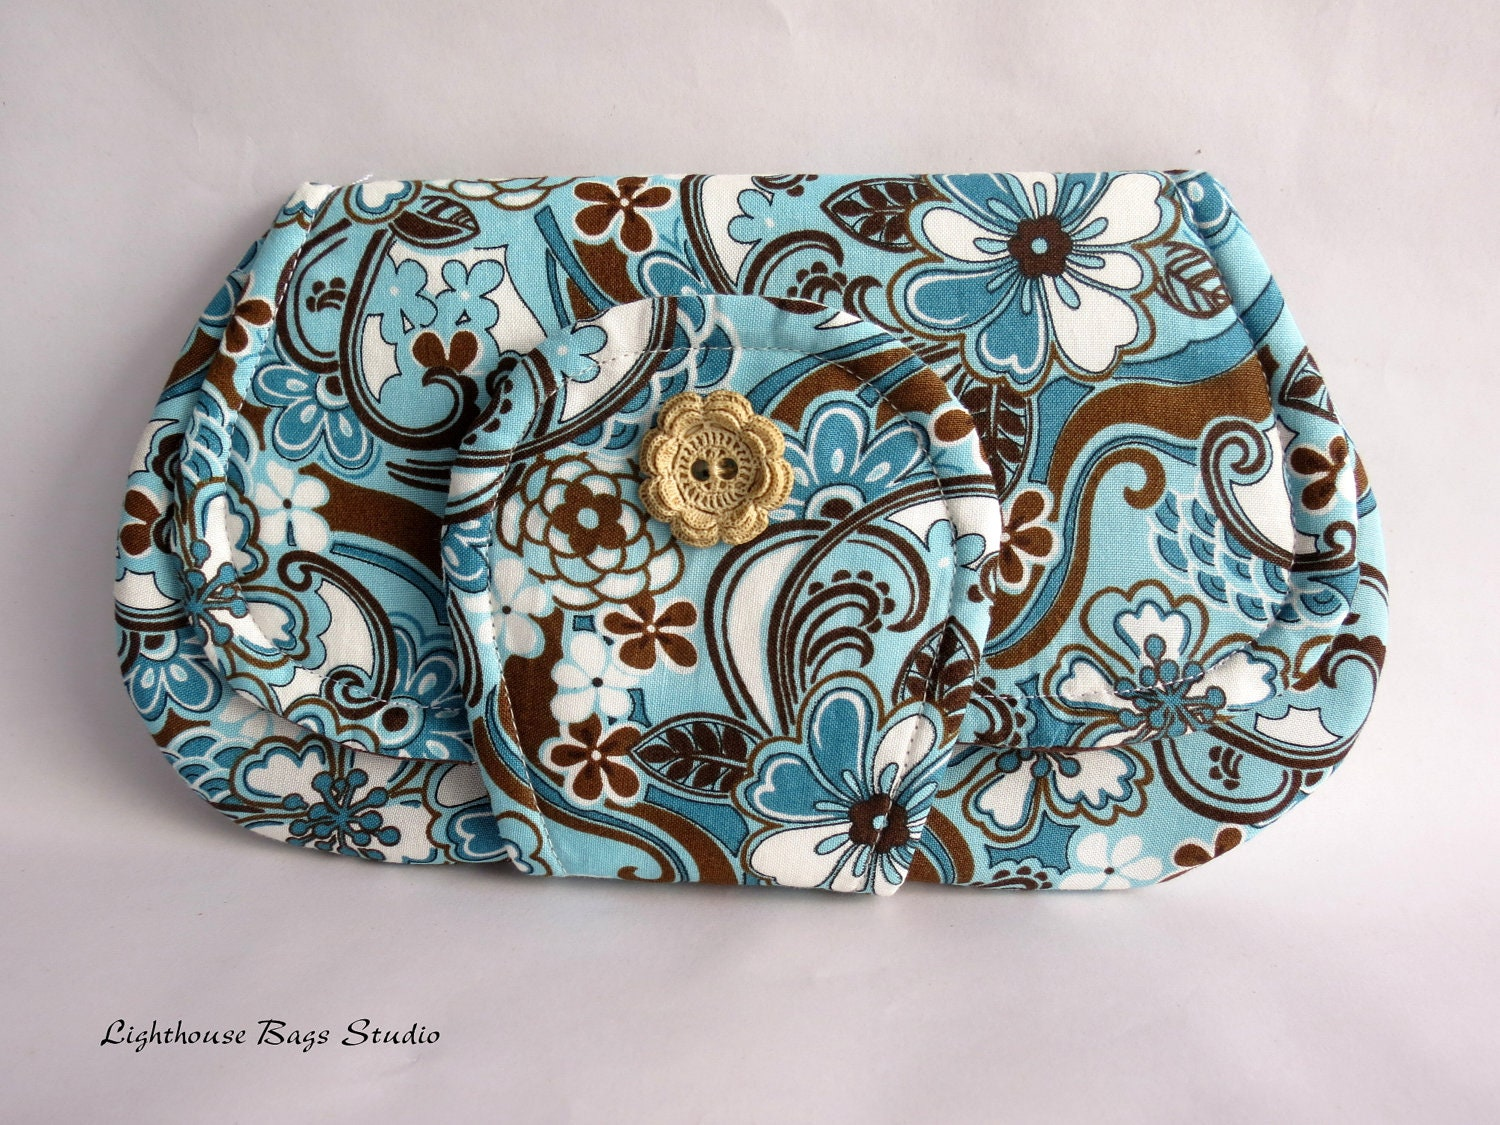 Pocket Clutch / the larger version in Floral Blue & Brown Fabric - Lighthousebags